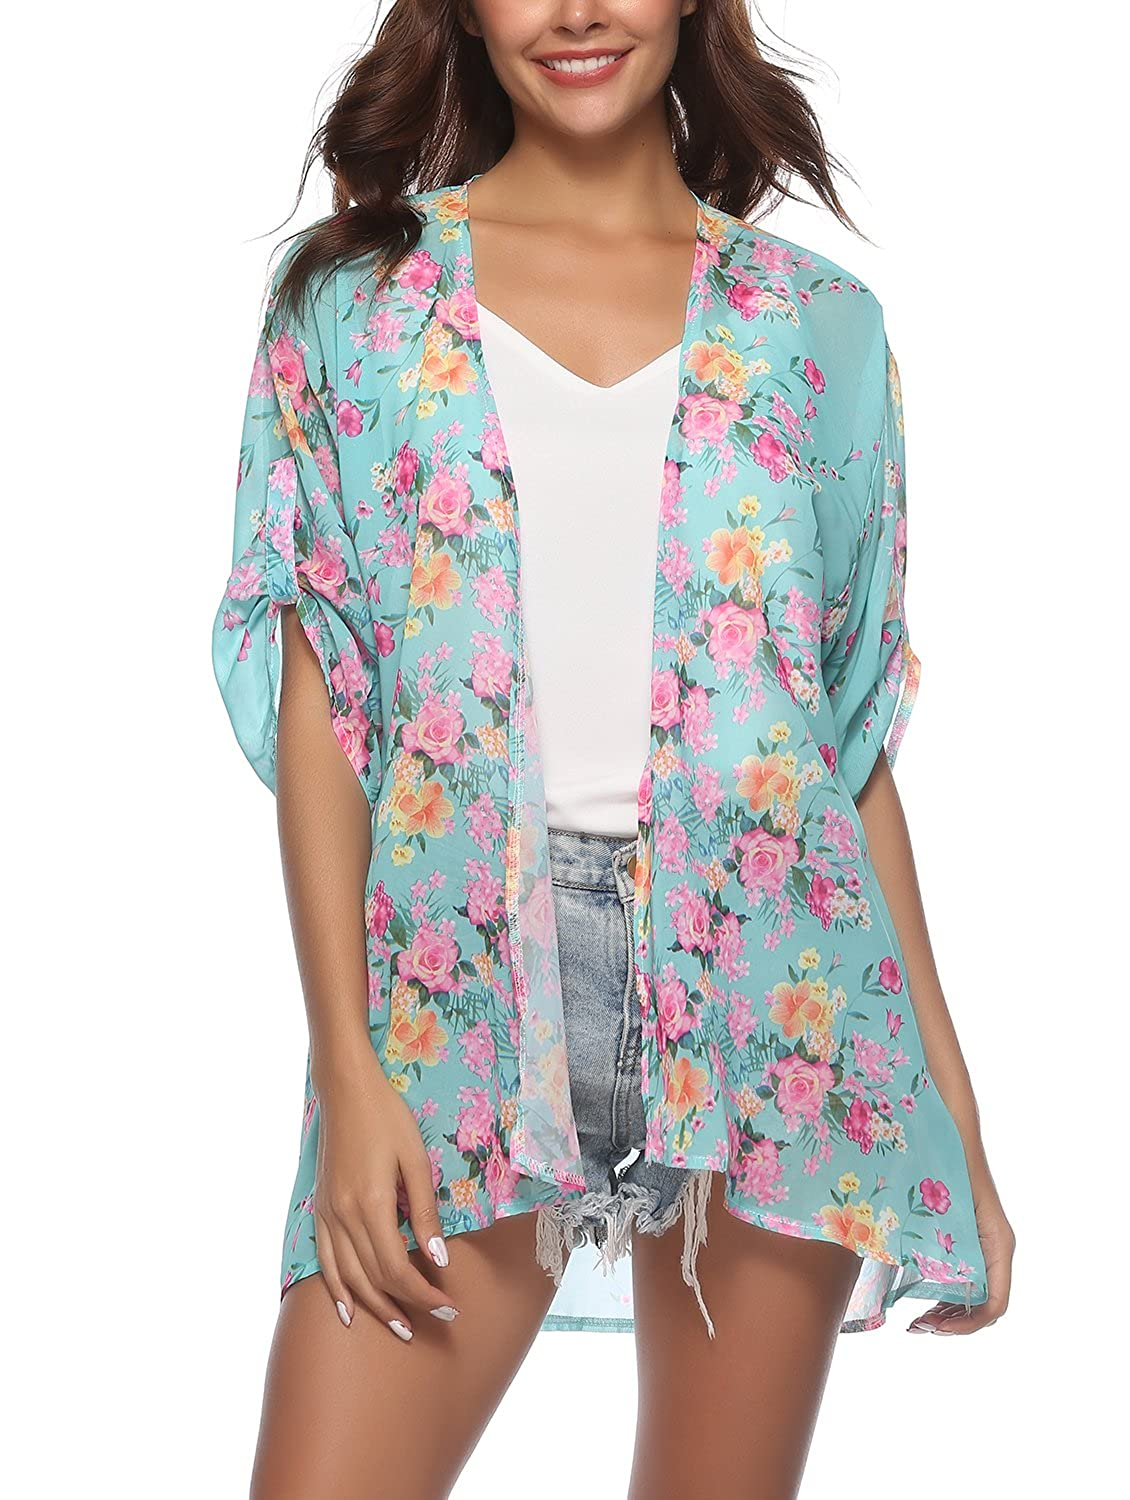 5c3d04e6a4433 This beach cover up is lightweight and a little sheer fabric with smooth  and comfortable touch. Beat the heat in this breezy kimono cardigan!